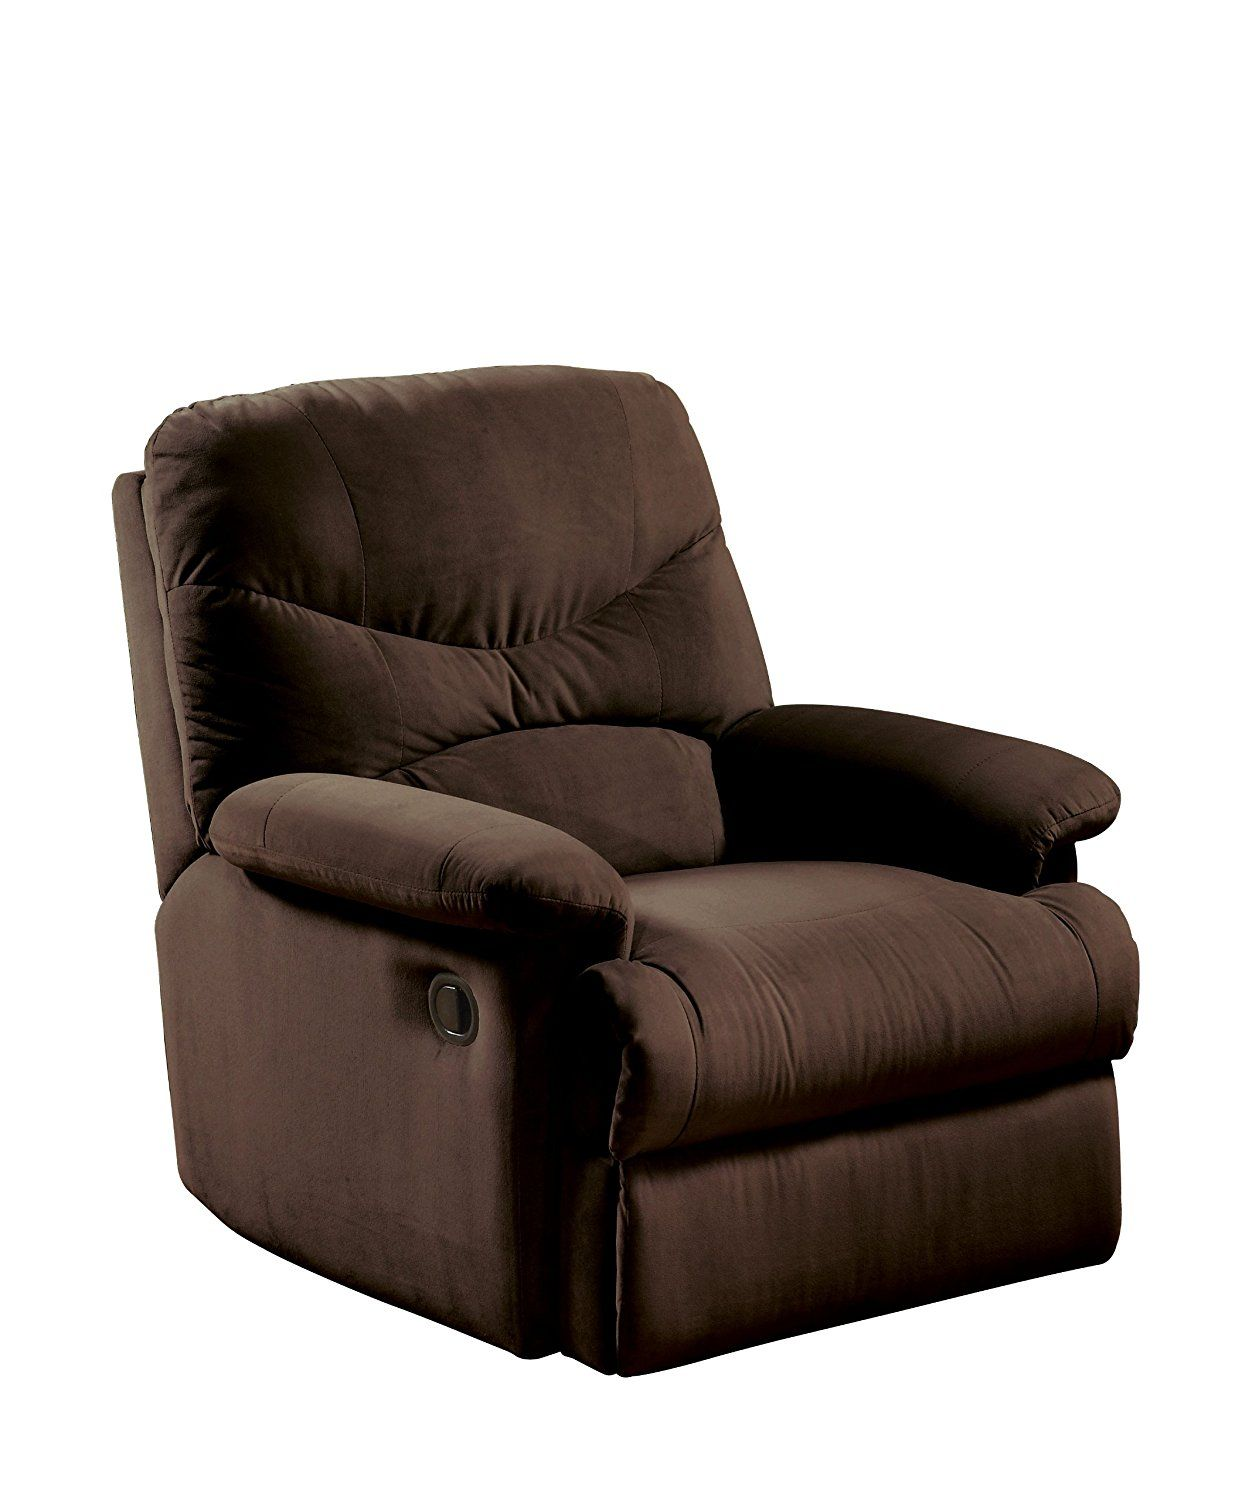 Recliners On Sale Under 200 Top Recliners Review